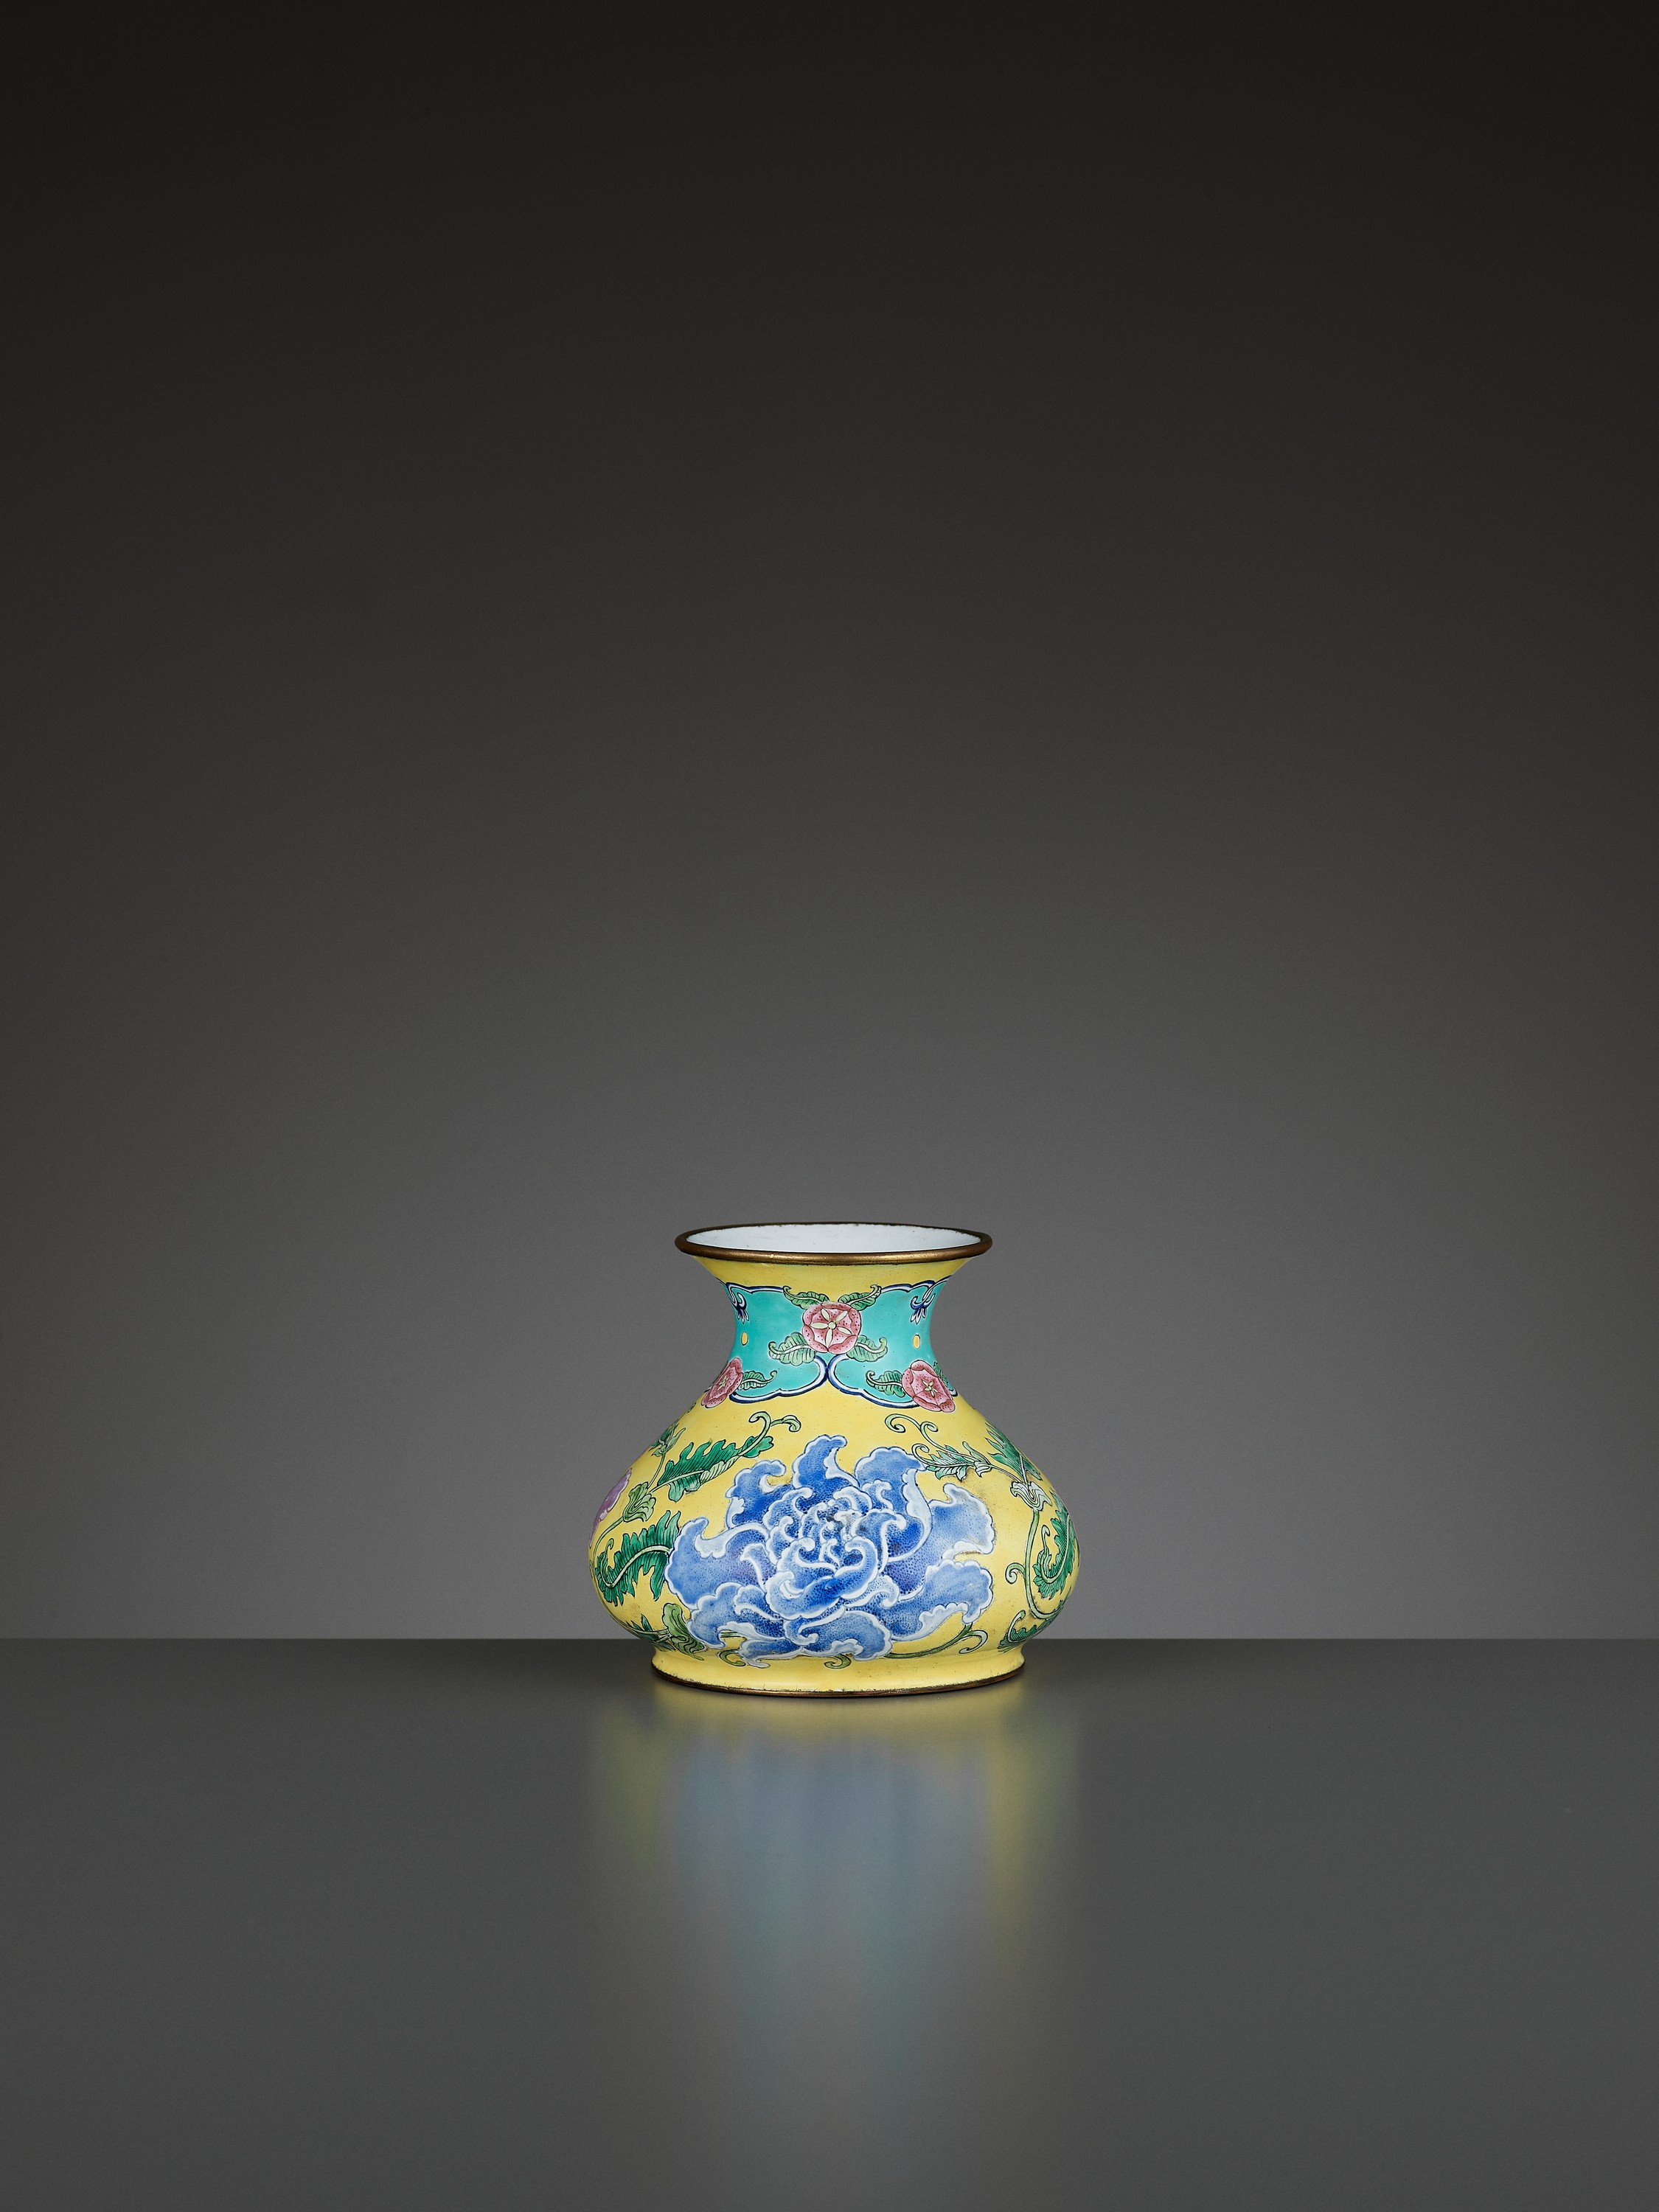 A BEIJING ENAMEL ON COPPER 'PEONIES' WATER POT, QIANLONG MARK AND PERIOD - Image 6 of 11